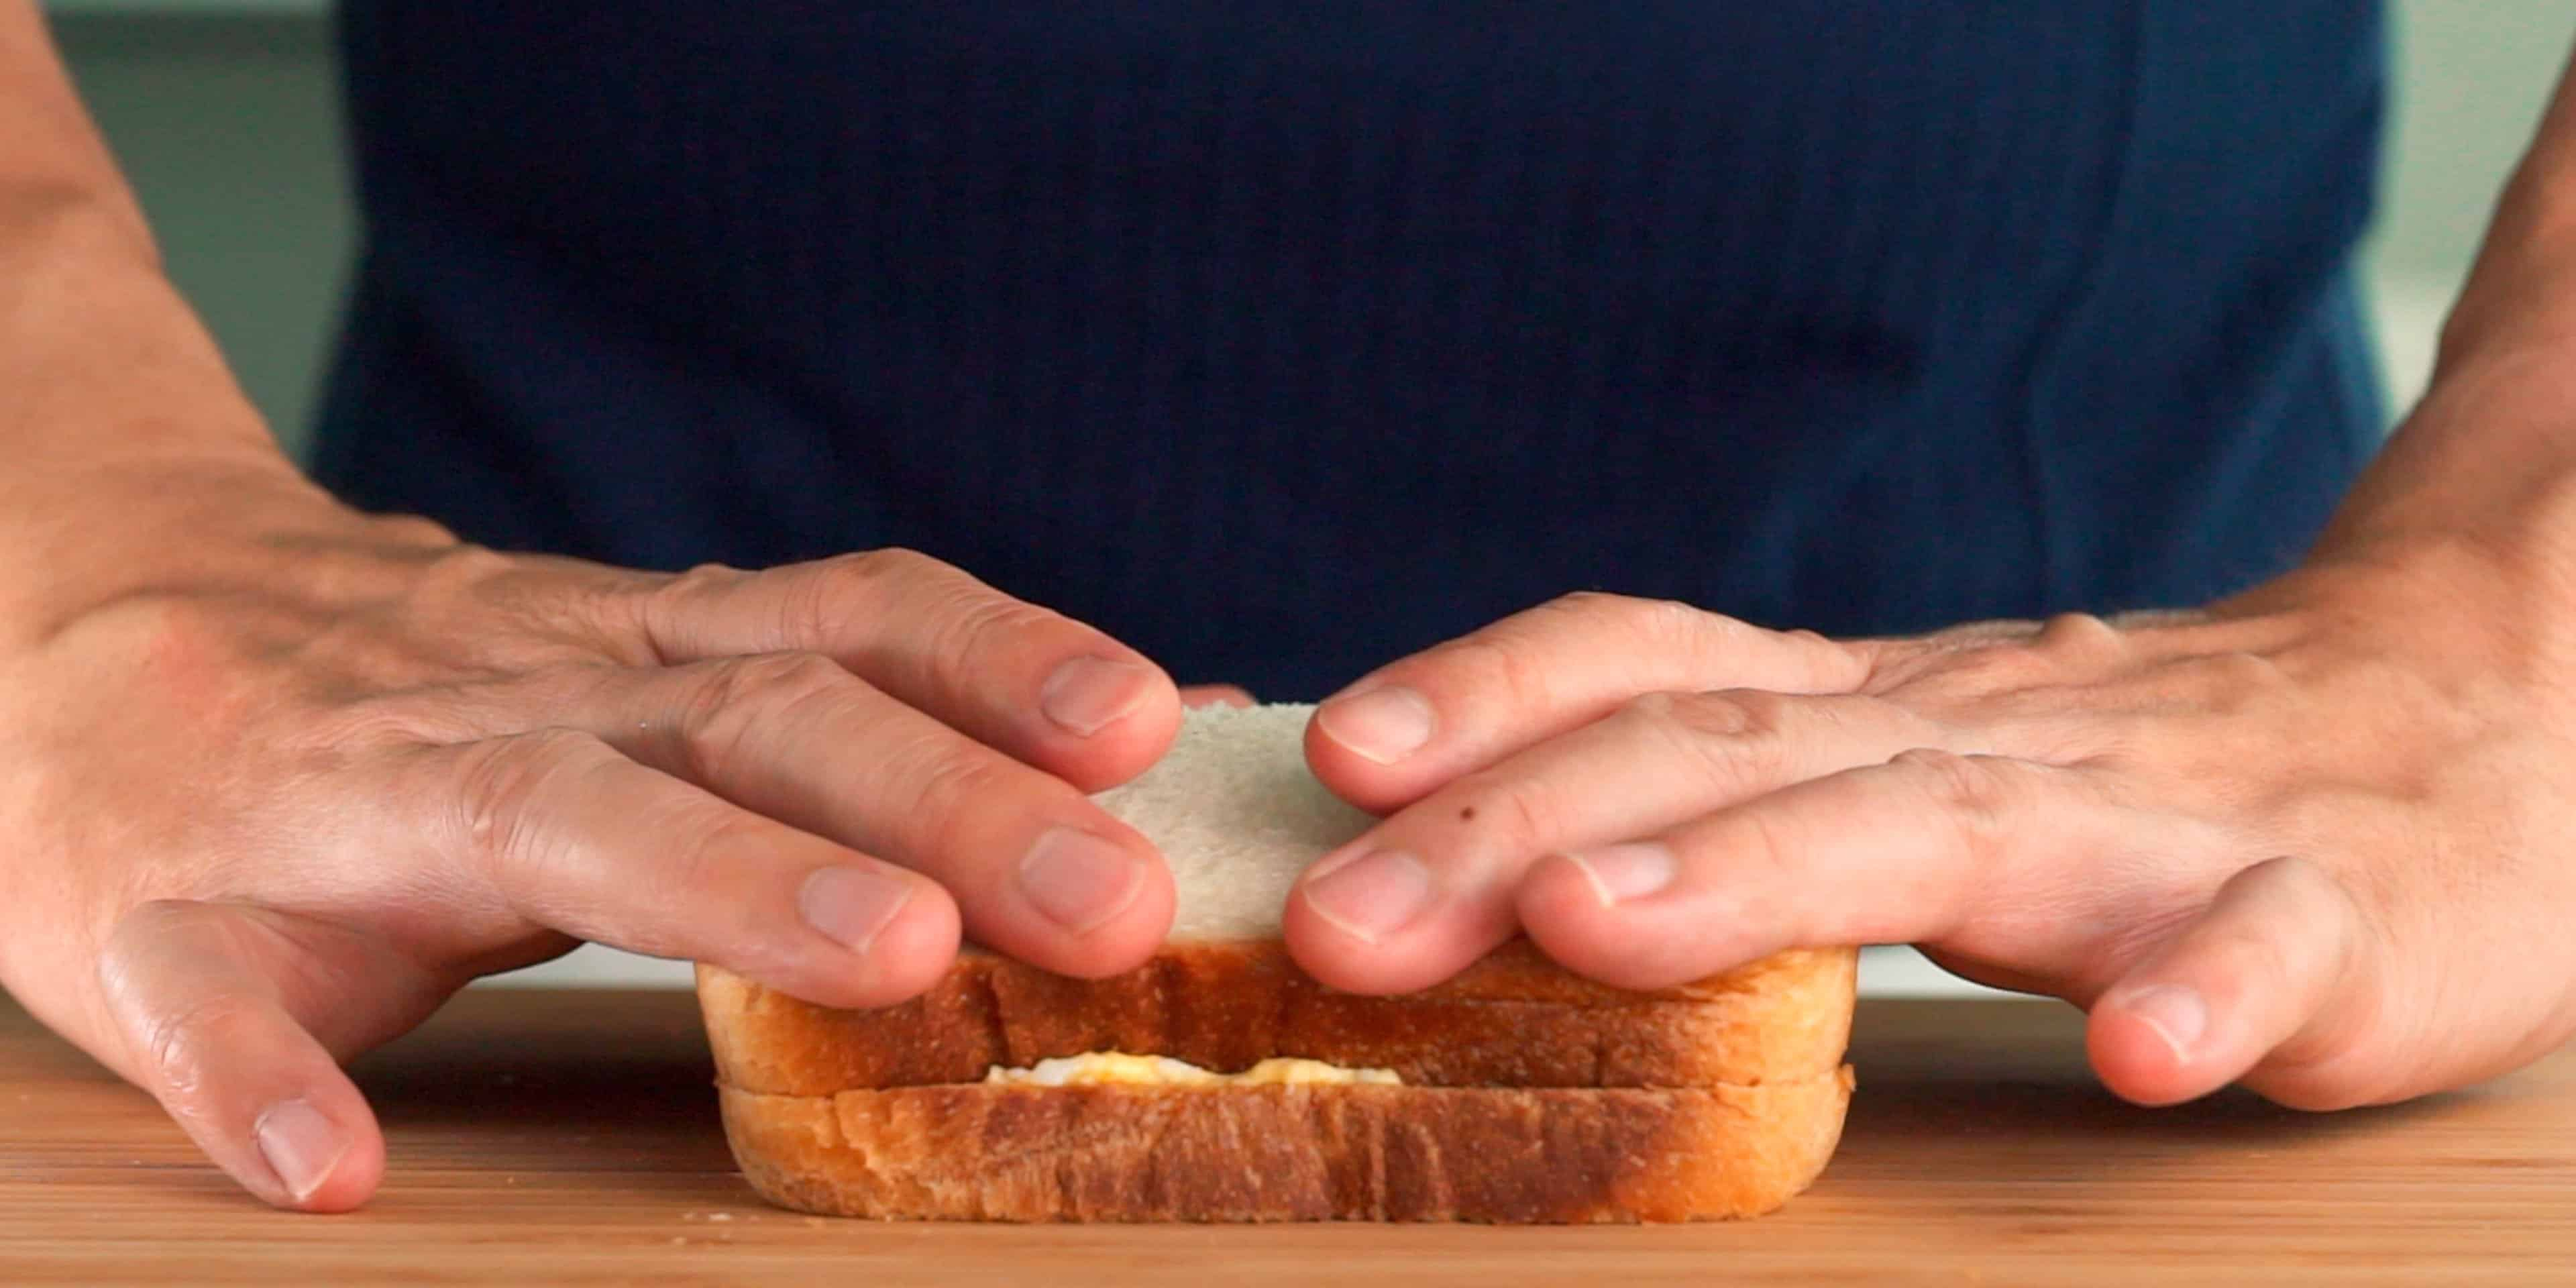 Smashing a Japanese style egg sandwich together.